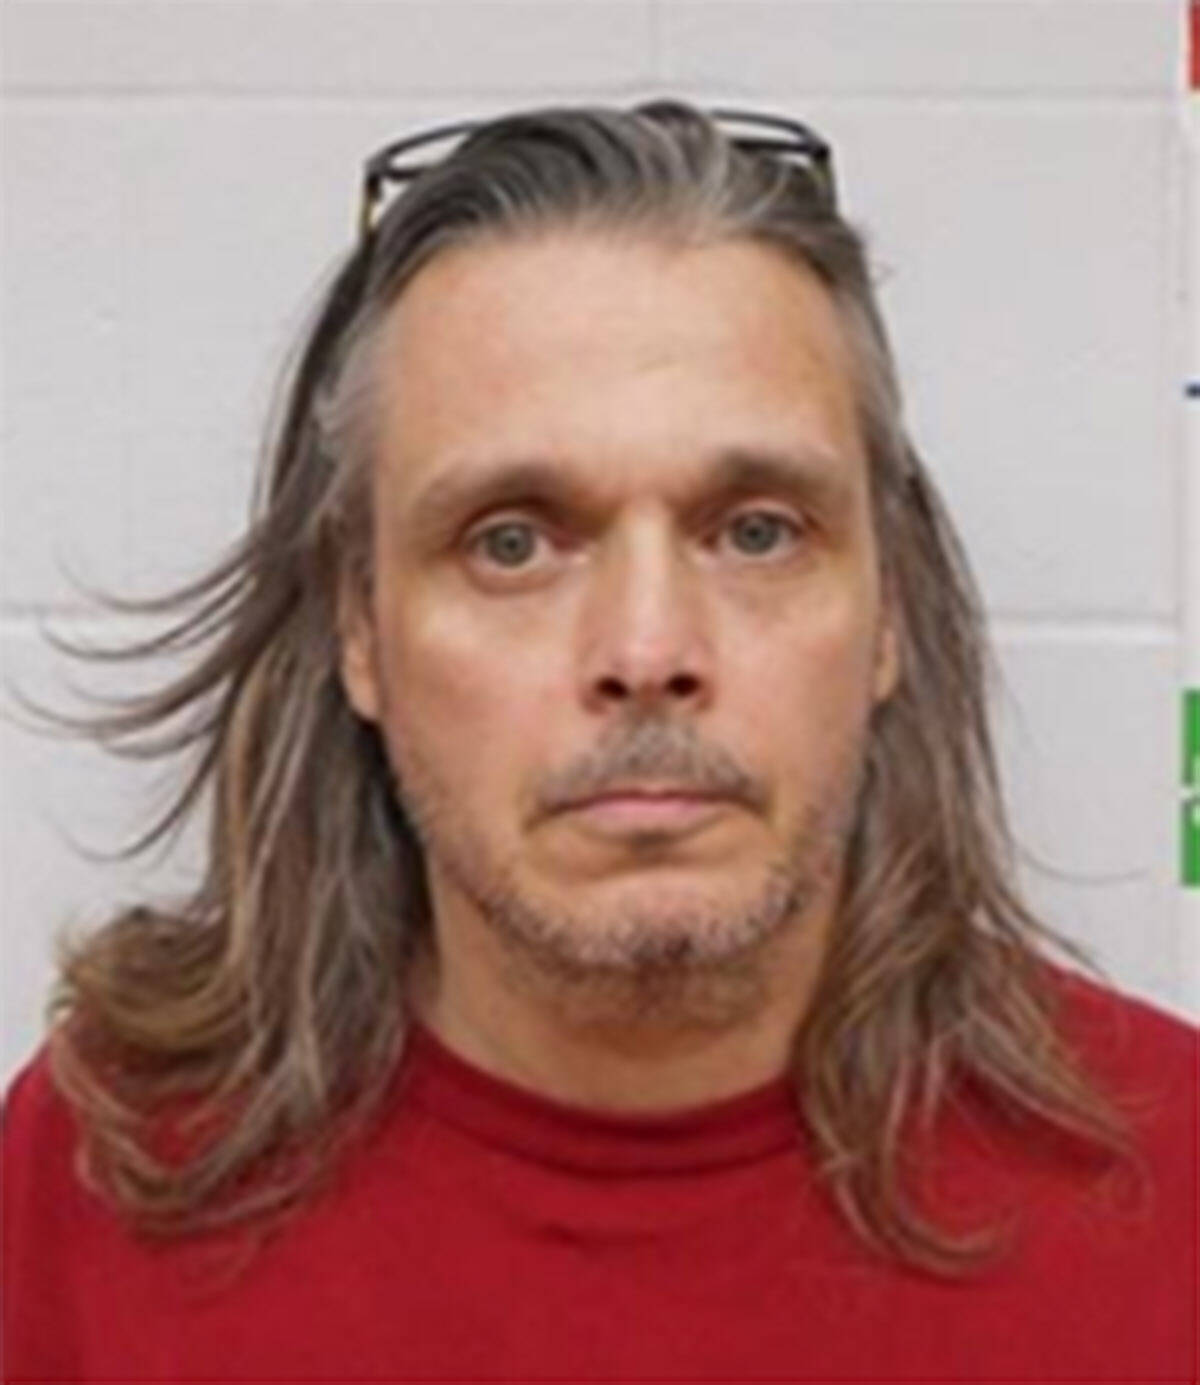 """Name: BONSELL, Warren Age: 53 Height: 5'9"""" ft Weight: 190lbs Hair: Grey Eyes: Hazel Wanted: Armed Robbery Warrant in effect: July 5, 2021 Parole Jurisdiction: New Westminster, BC"""